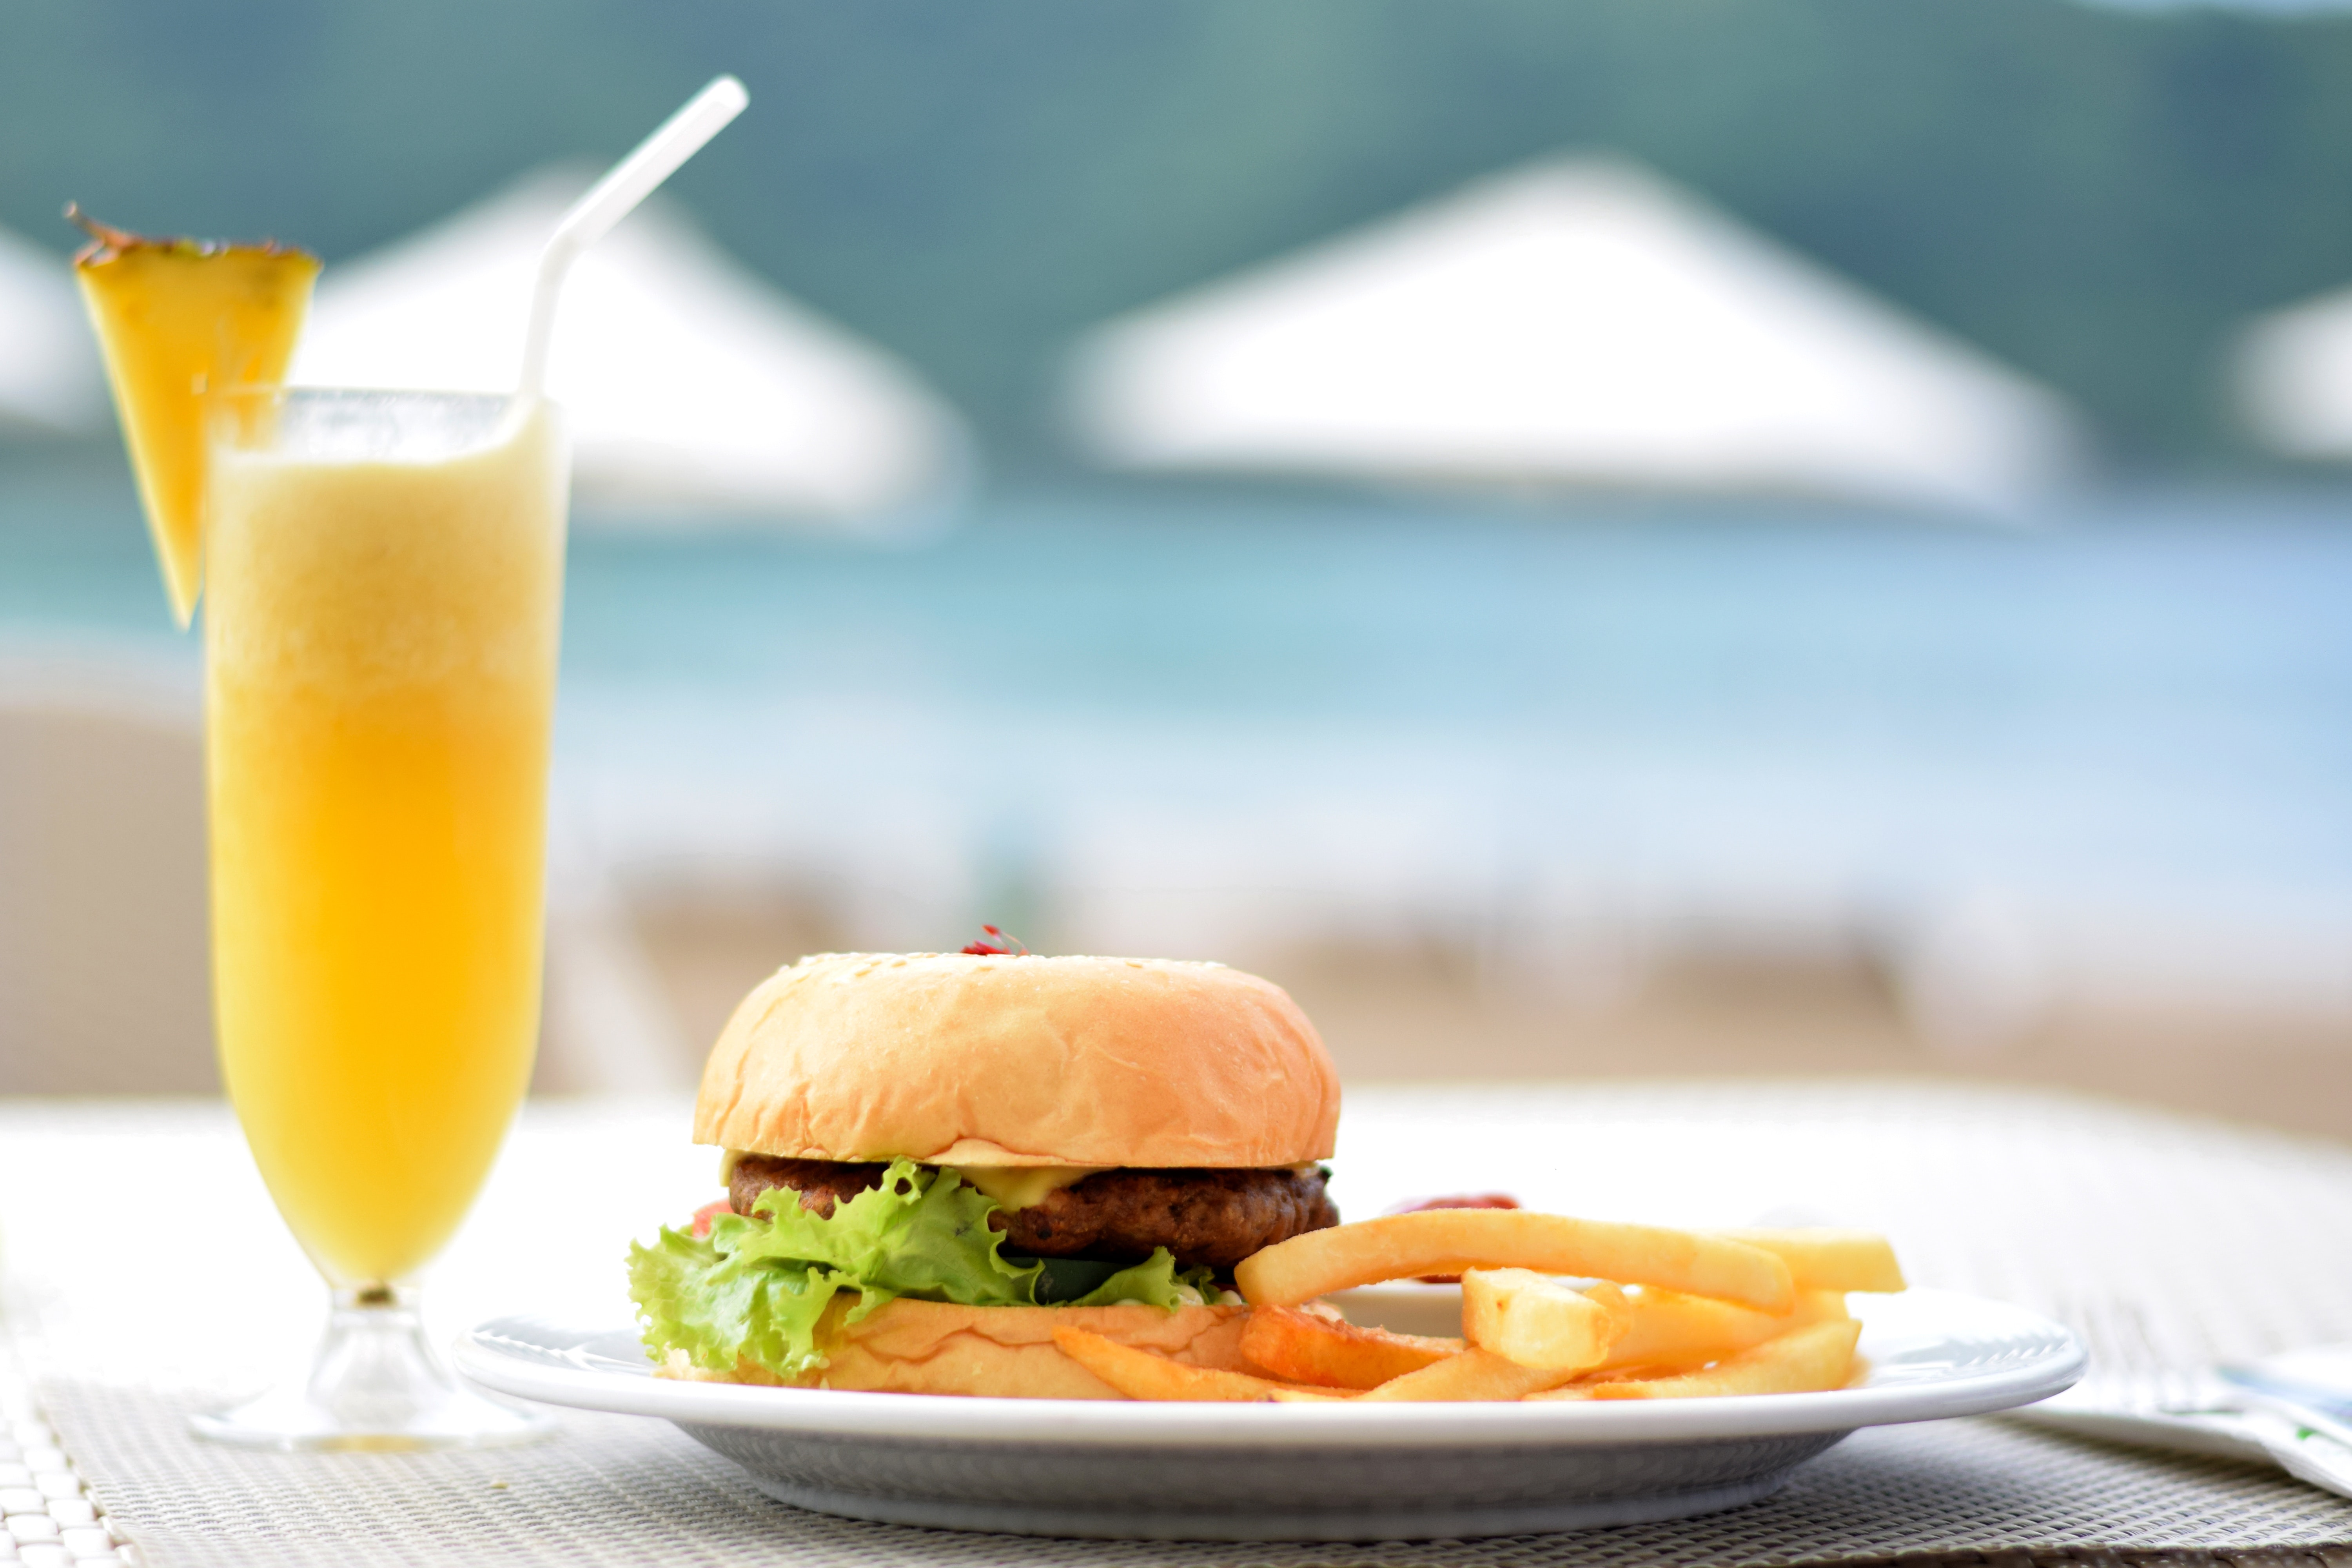 Burger with lettuce and fries on plate beside pineapple juice photo